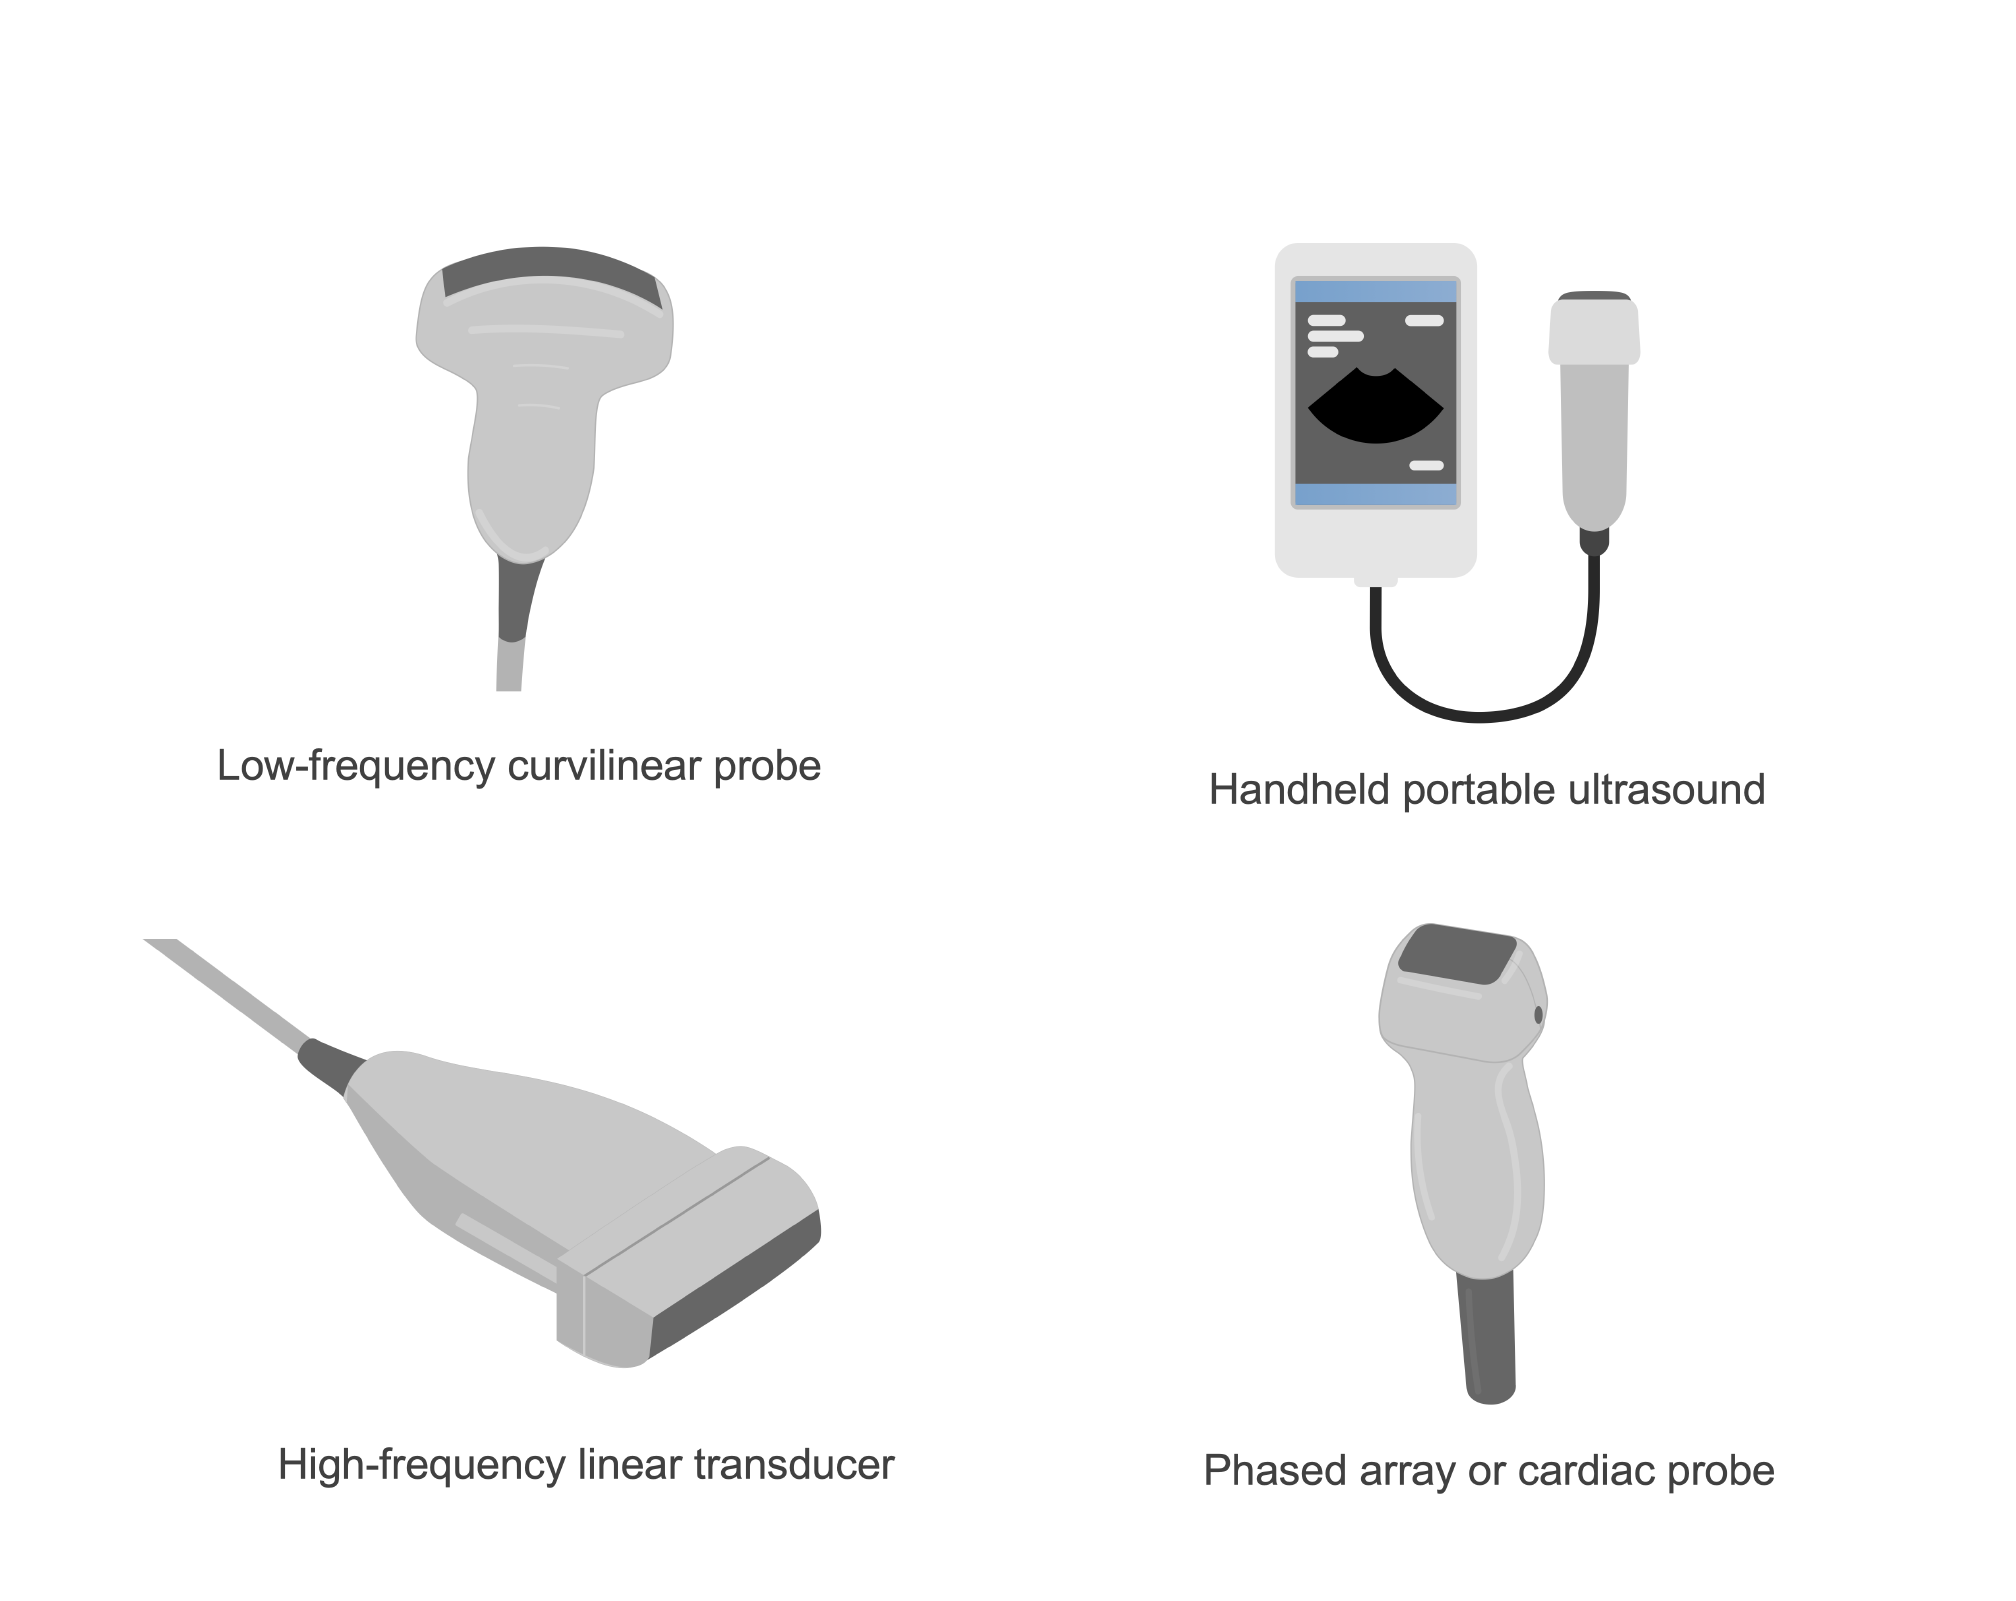 Four ultrasound probes low-frequency curvilinear probe, a handheld portable ultrasound, high-frequency linear transducer, and phased array or cardiac probe. Illustration.